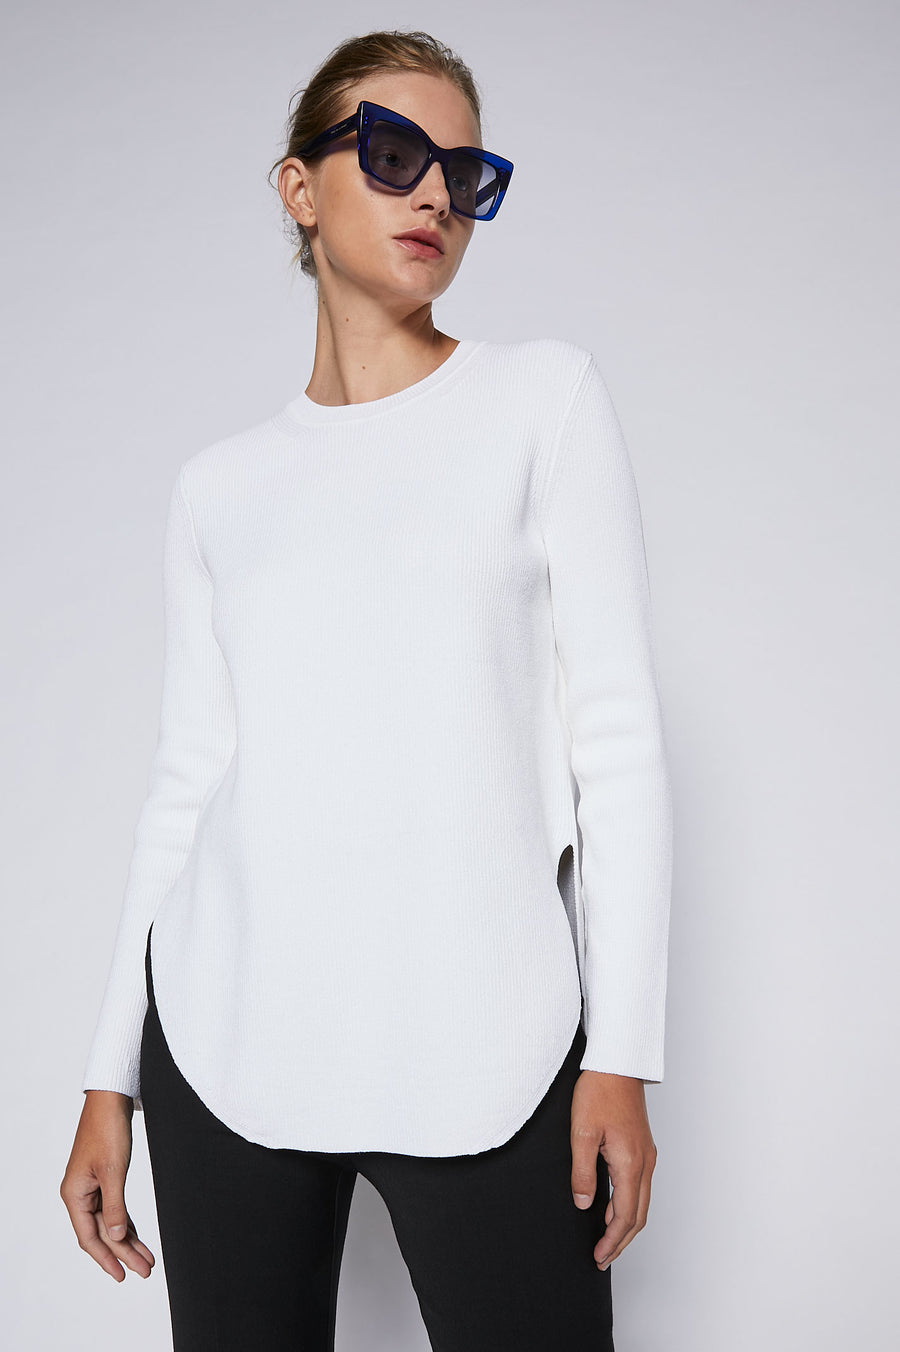 A quintessential basic for any season, this rib-knit top will be a go-to for years to come